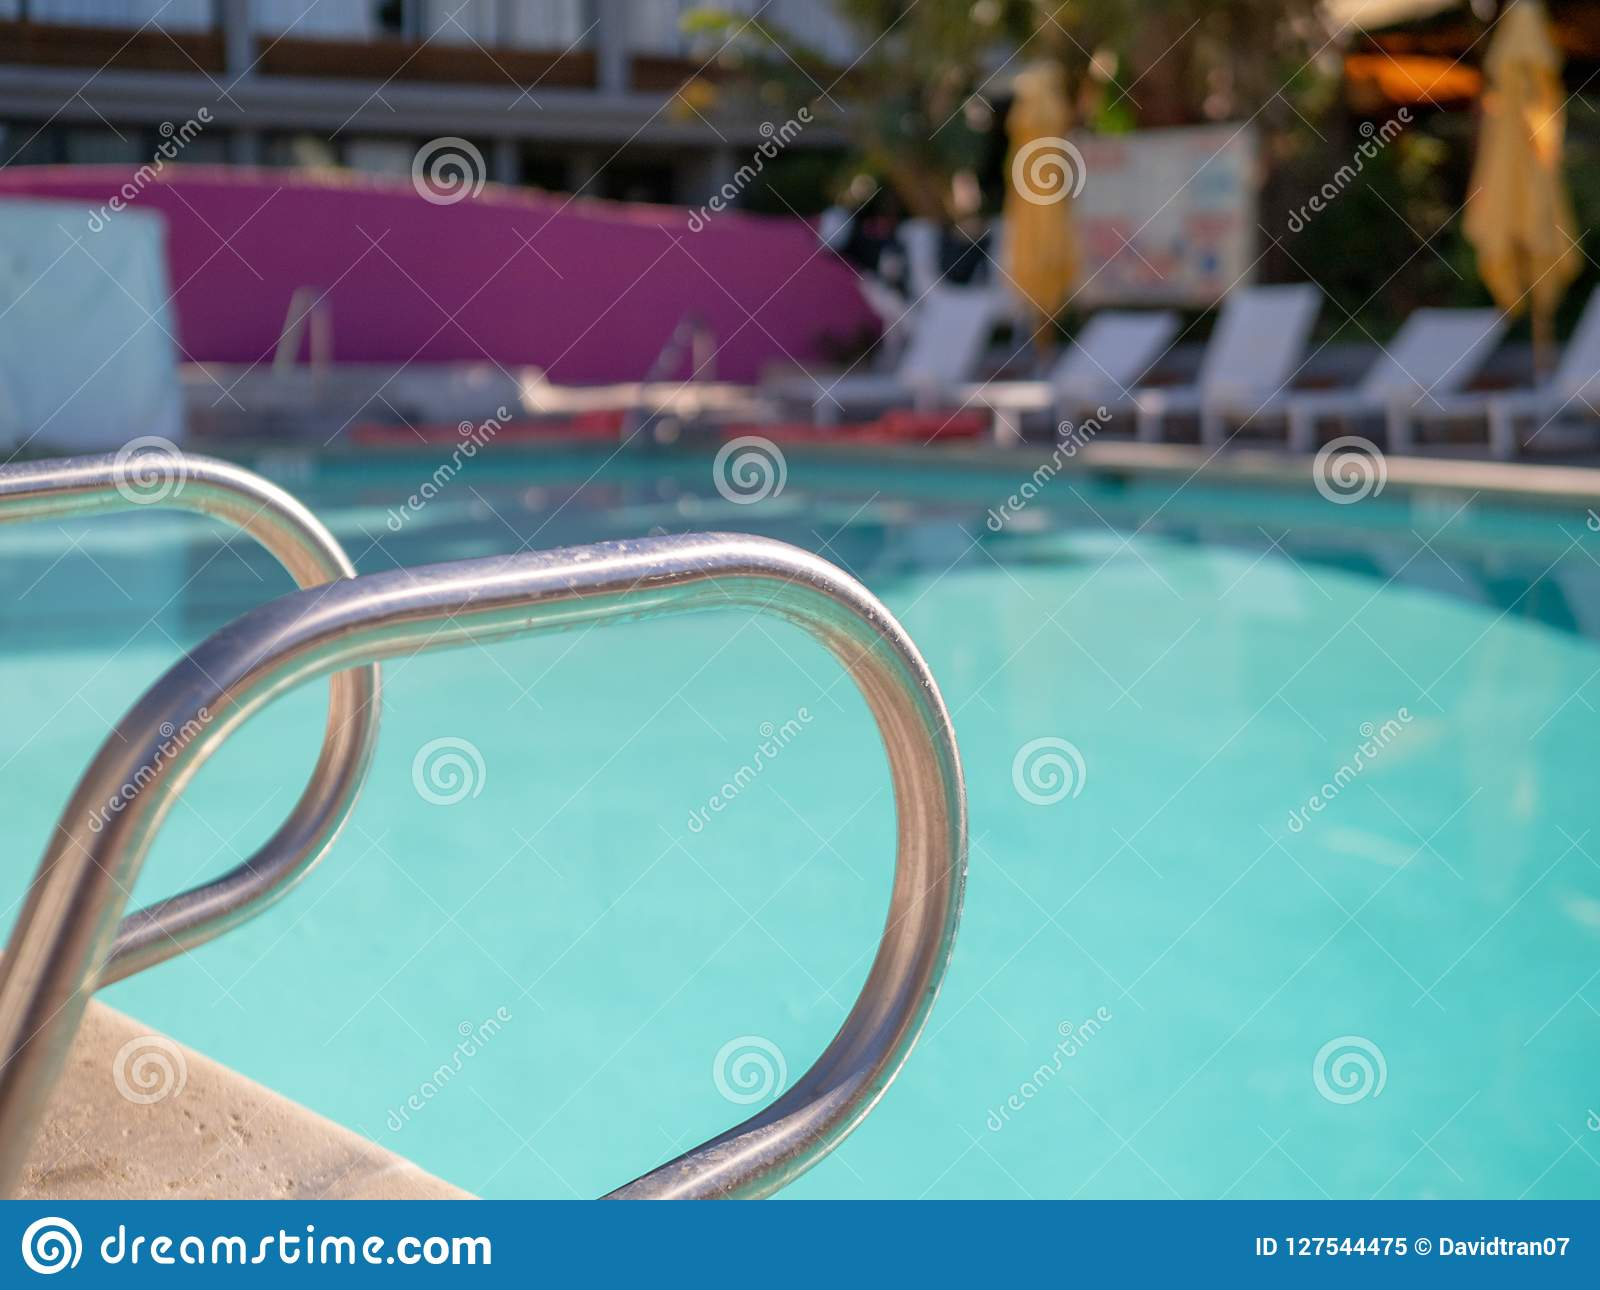 Steel handrail entrance assist to outdoor pool on sunny day